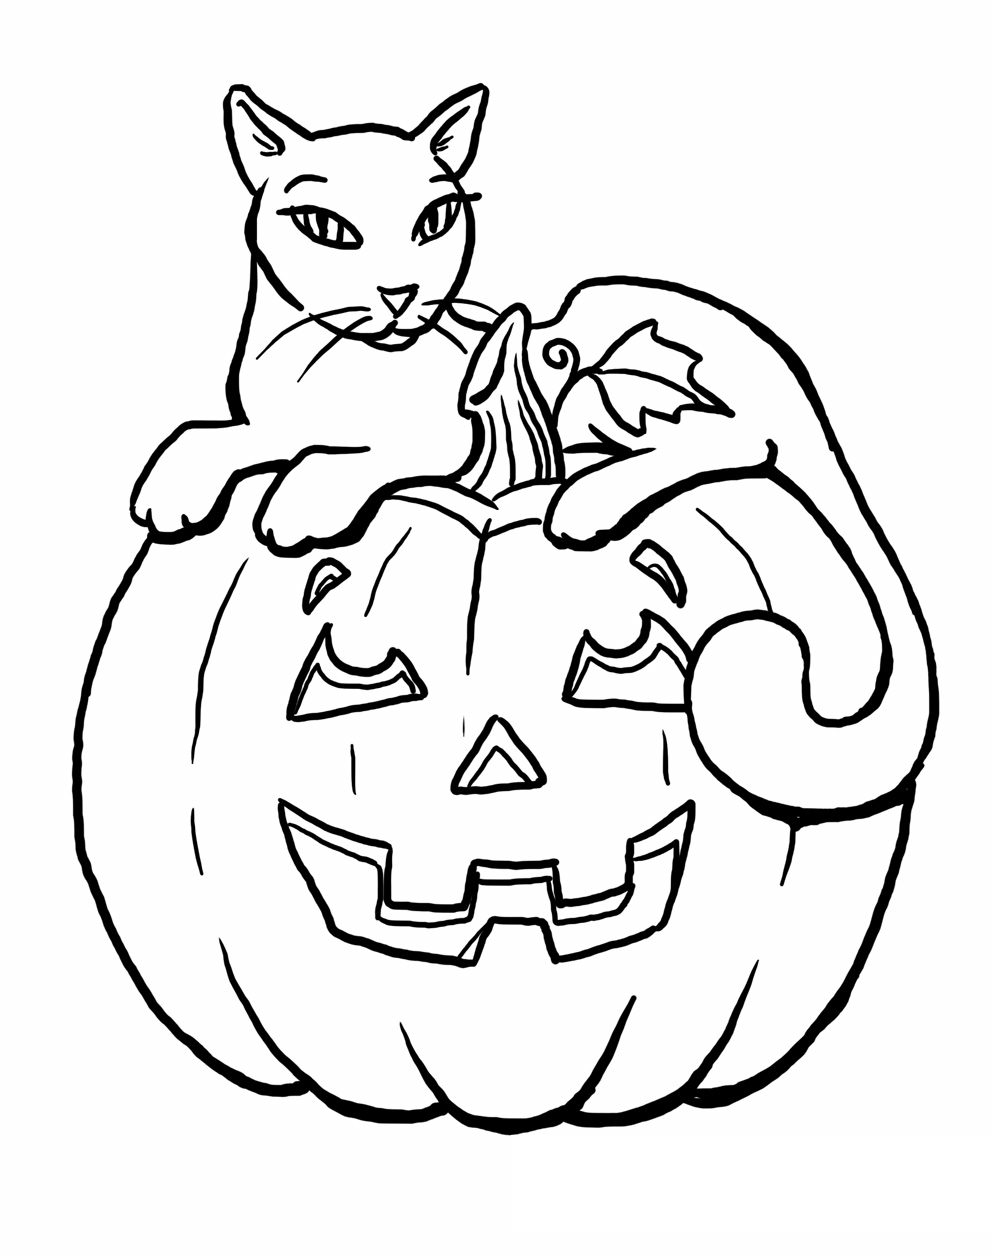 Edge Scary Black Cat Coloring Pages Superhero All  6488